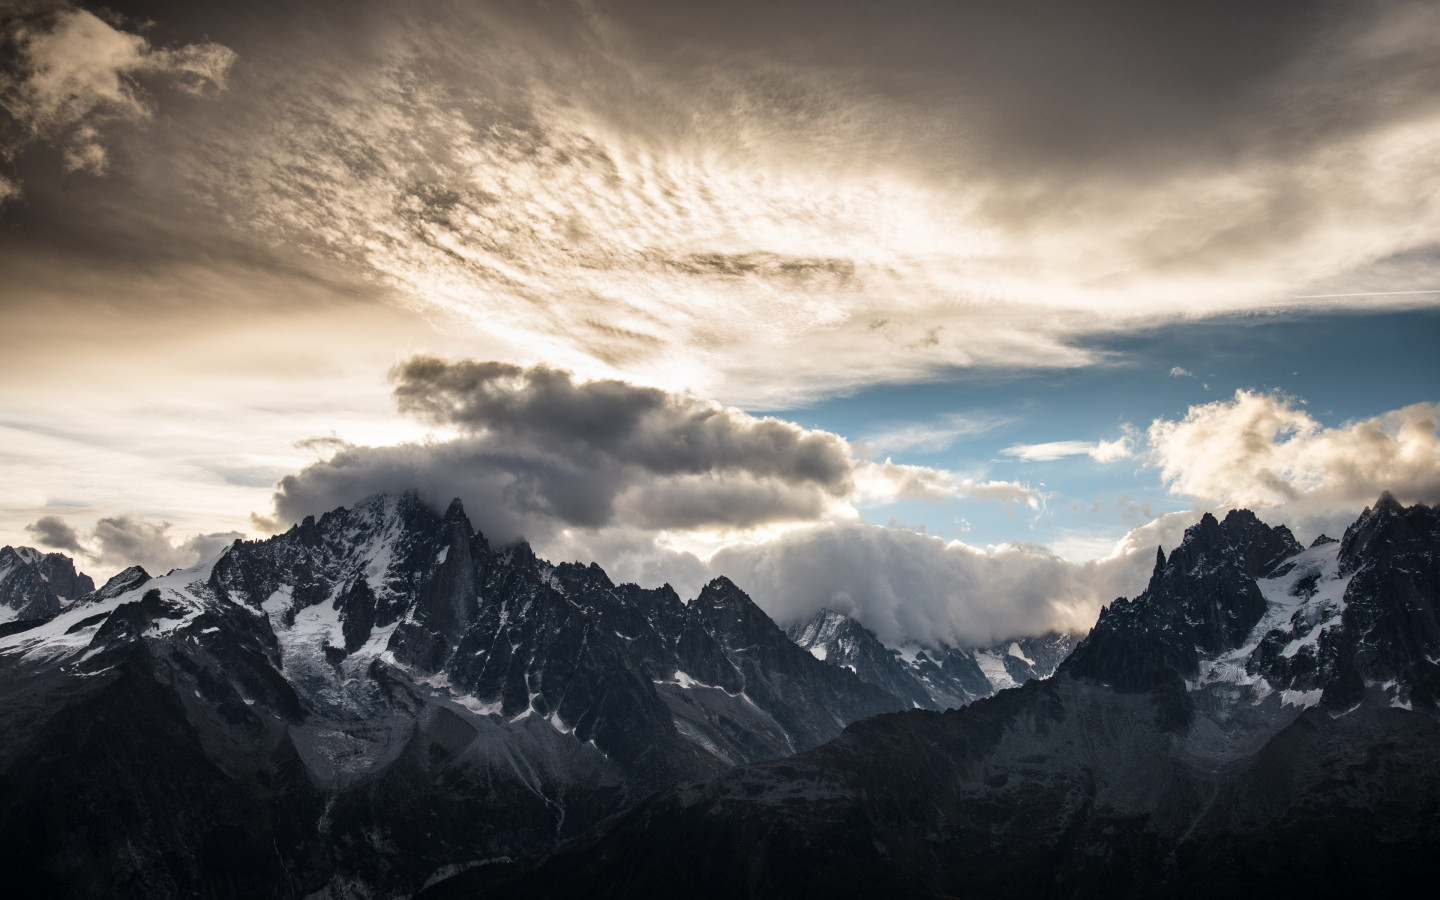 Download Wallpaper Mountain Peaks Clouds Landscape From